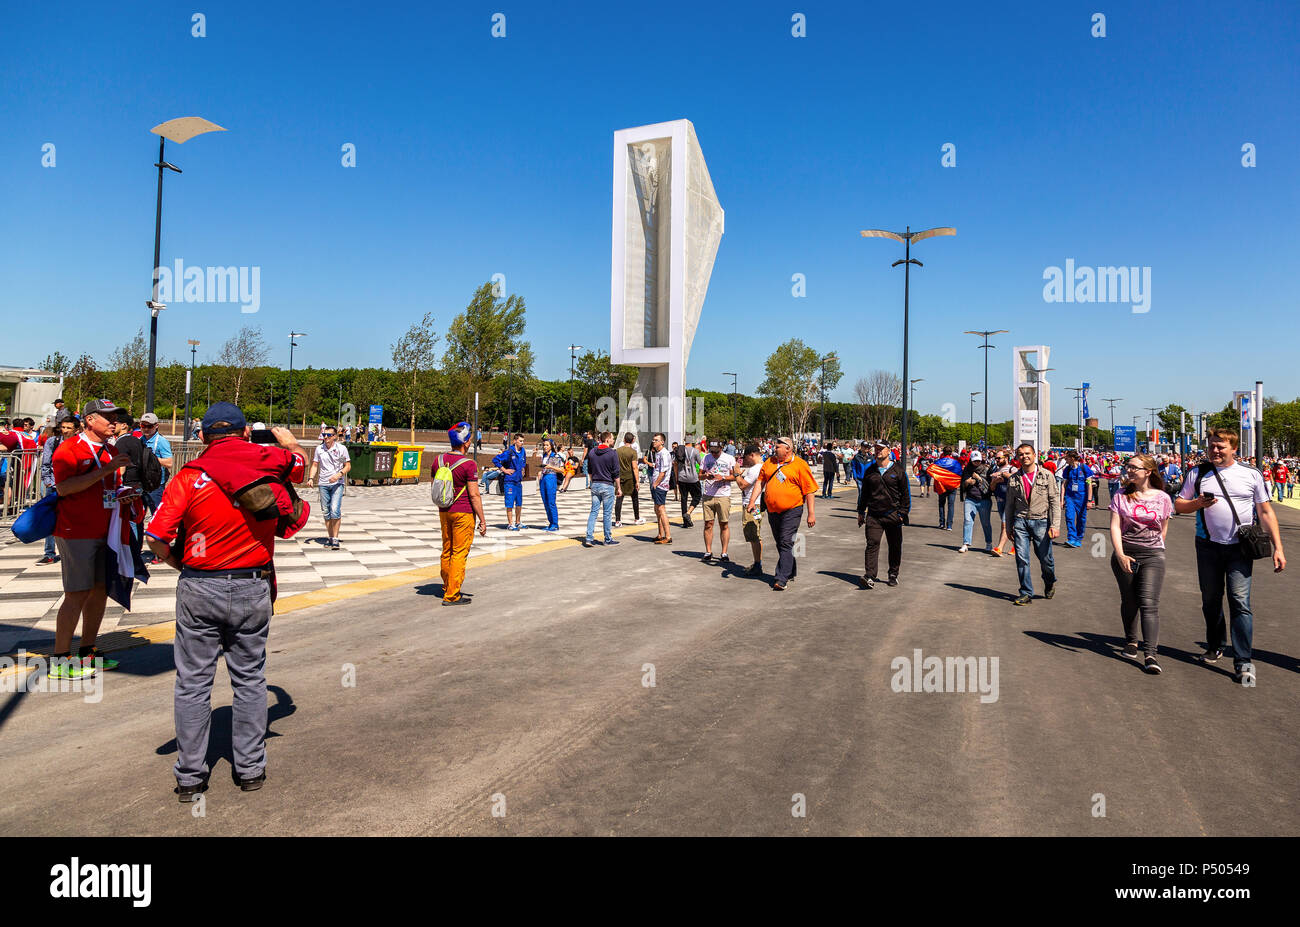 Samara, Russia - June 17, 2018: Football fans next to the Samara Arena stadium during the 2018 FIFA World Cup - Stock Image